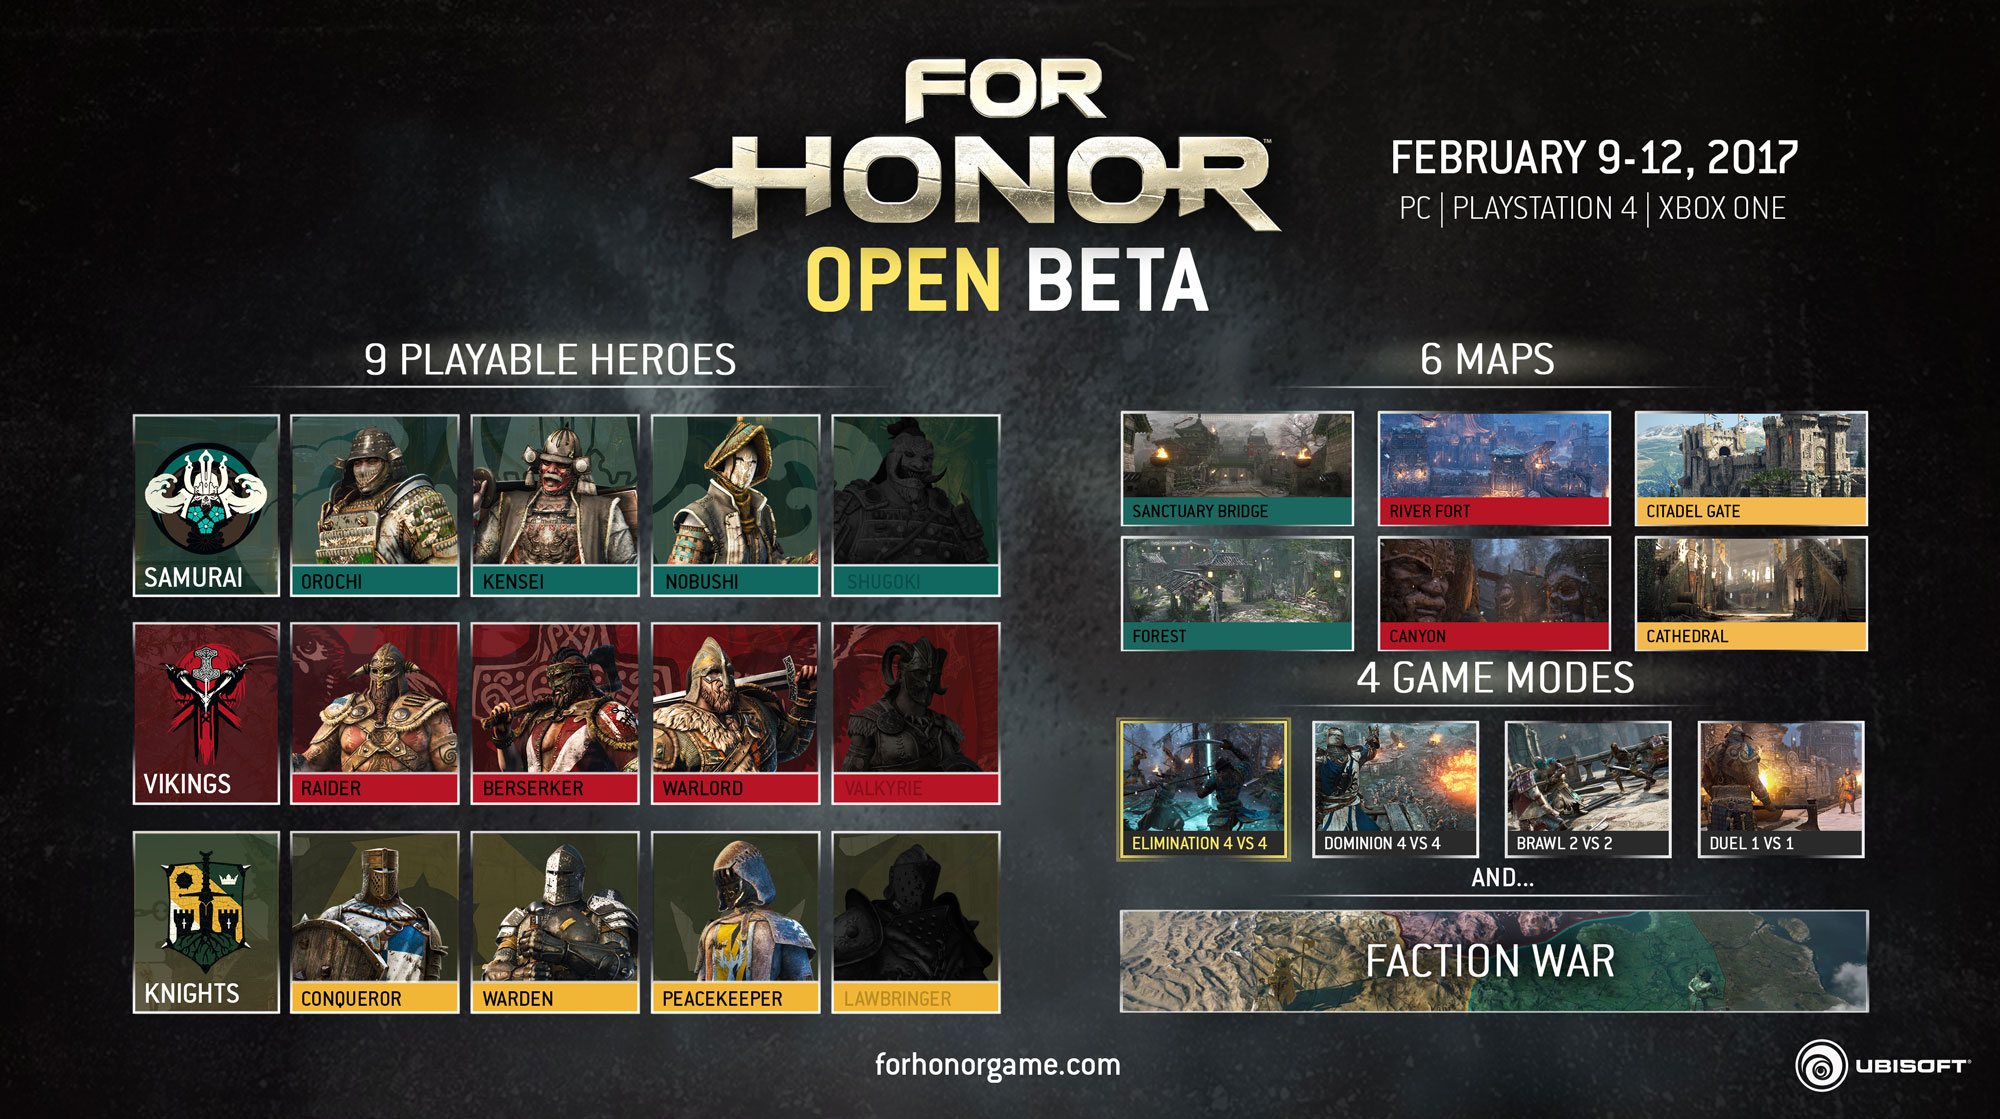 [2017-01-31] fh_news_open_beta